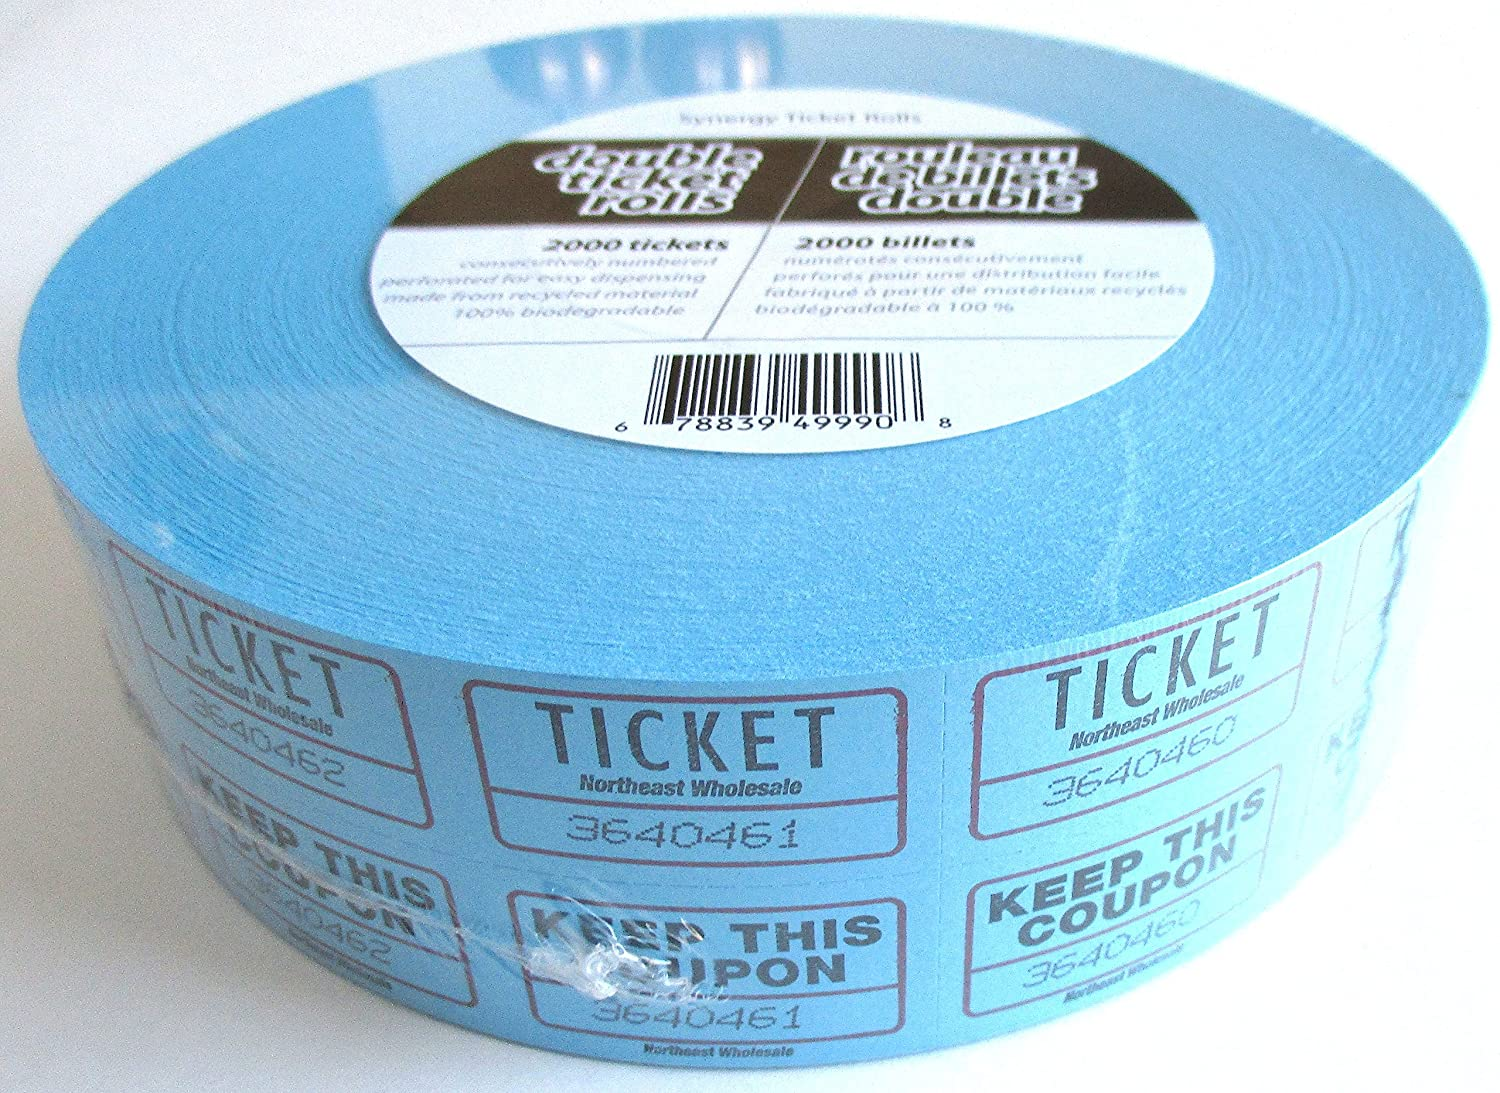 Admit One Tickets With Coupon 2000 Tickets Blue Colour Canada Ticket Rolls